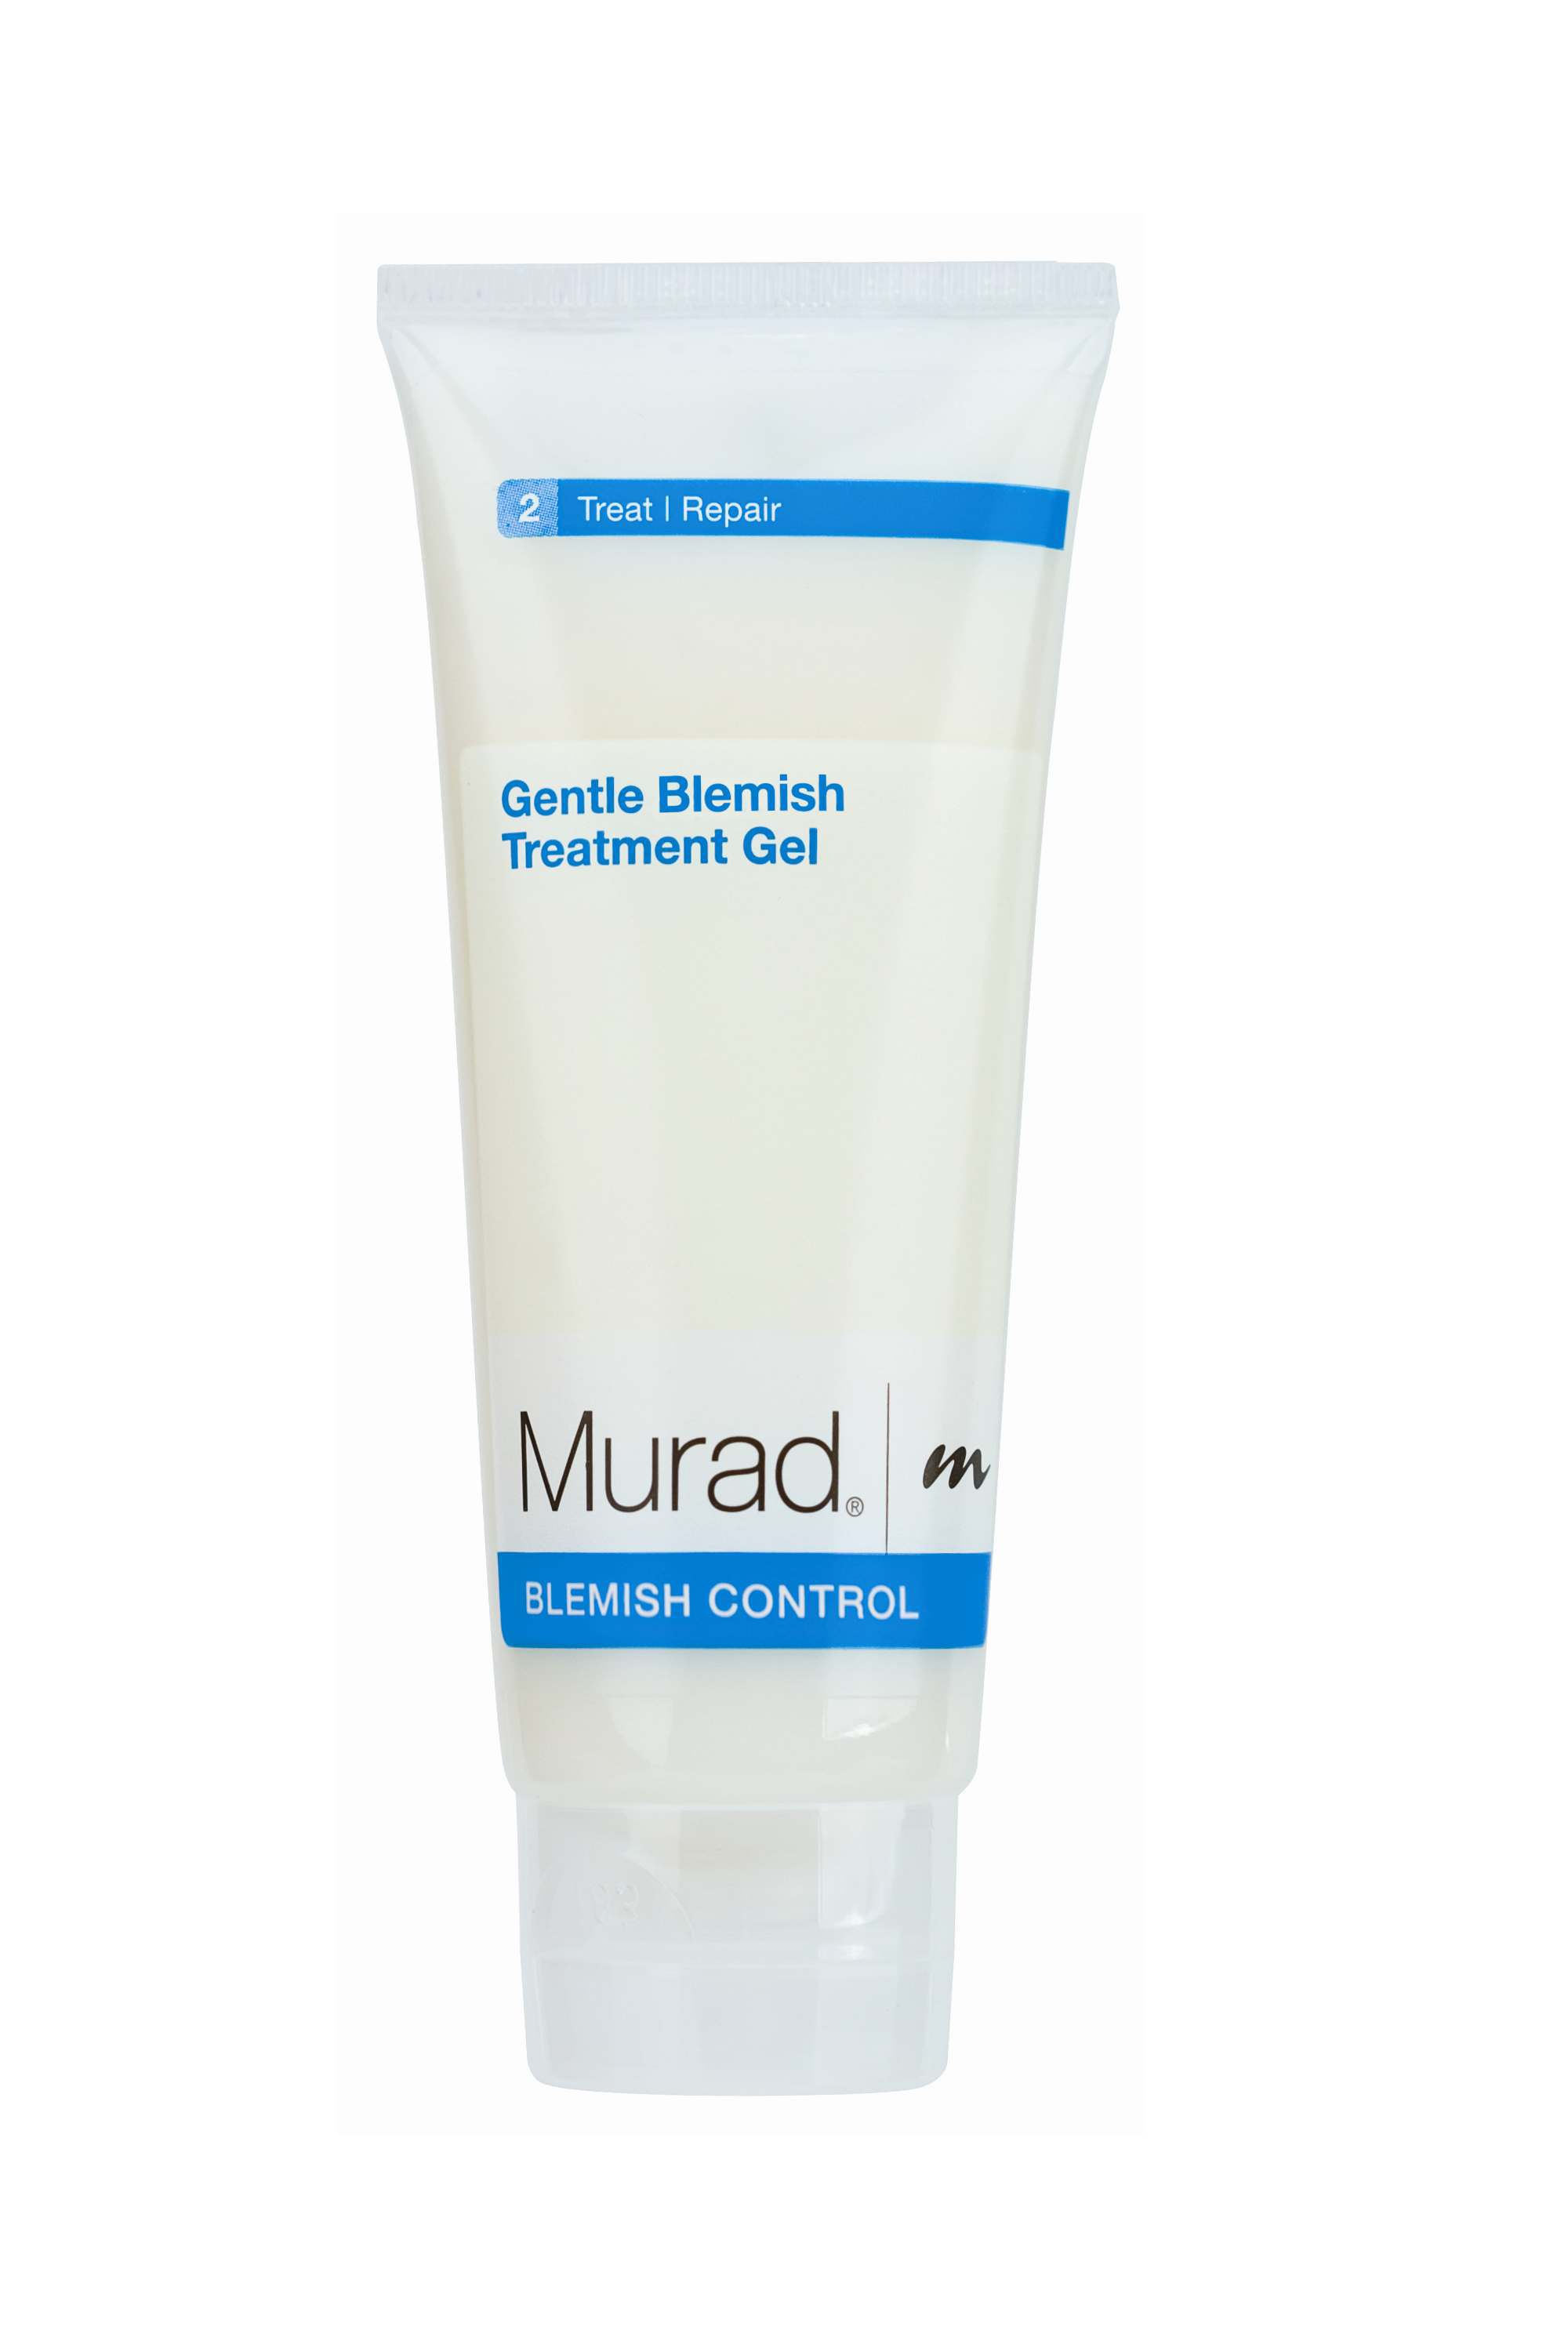 Gentle Blemish Treatment Gel